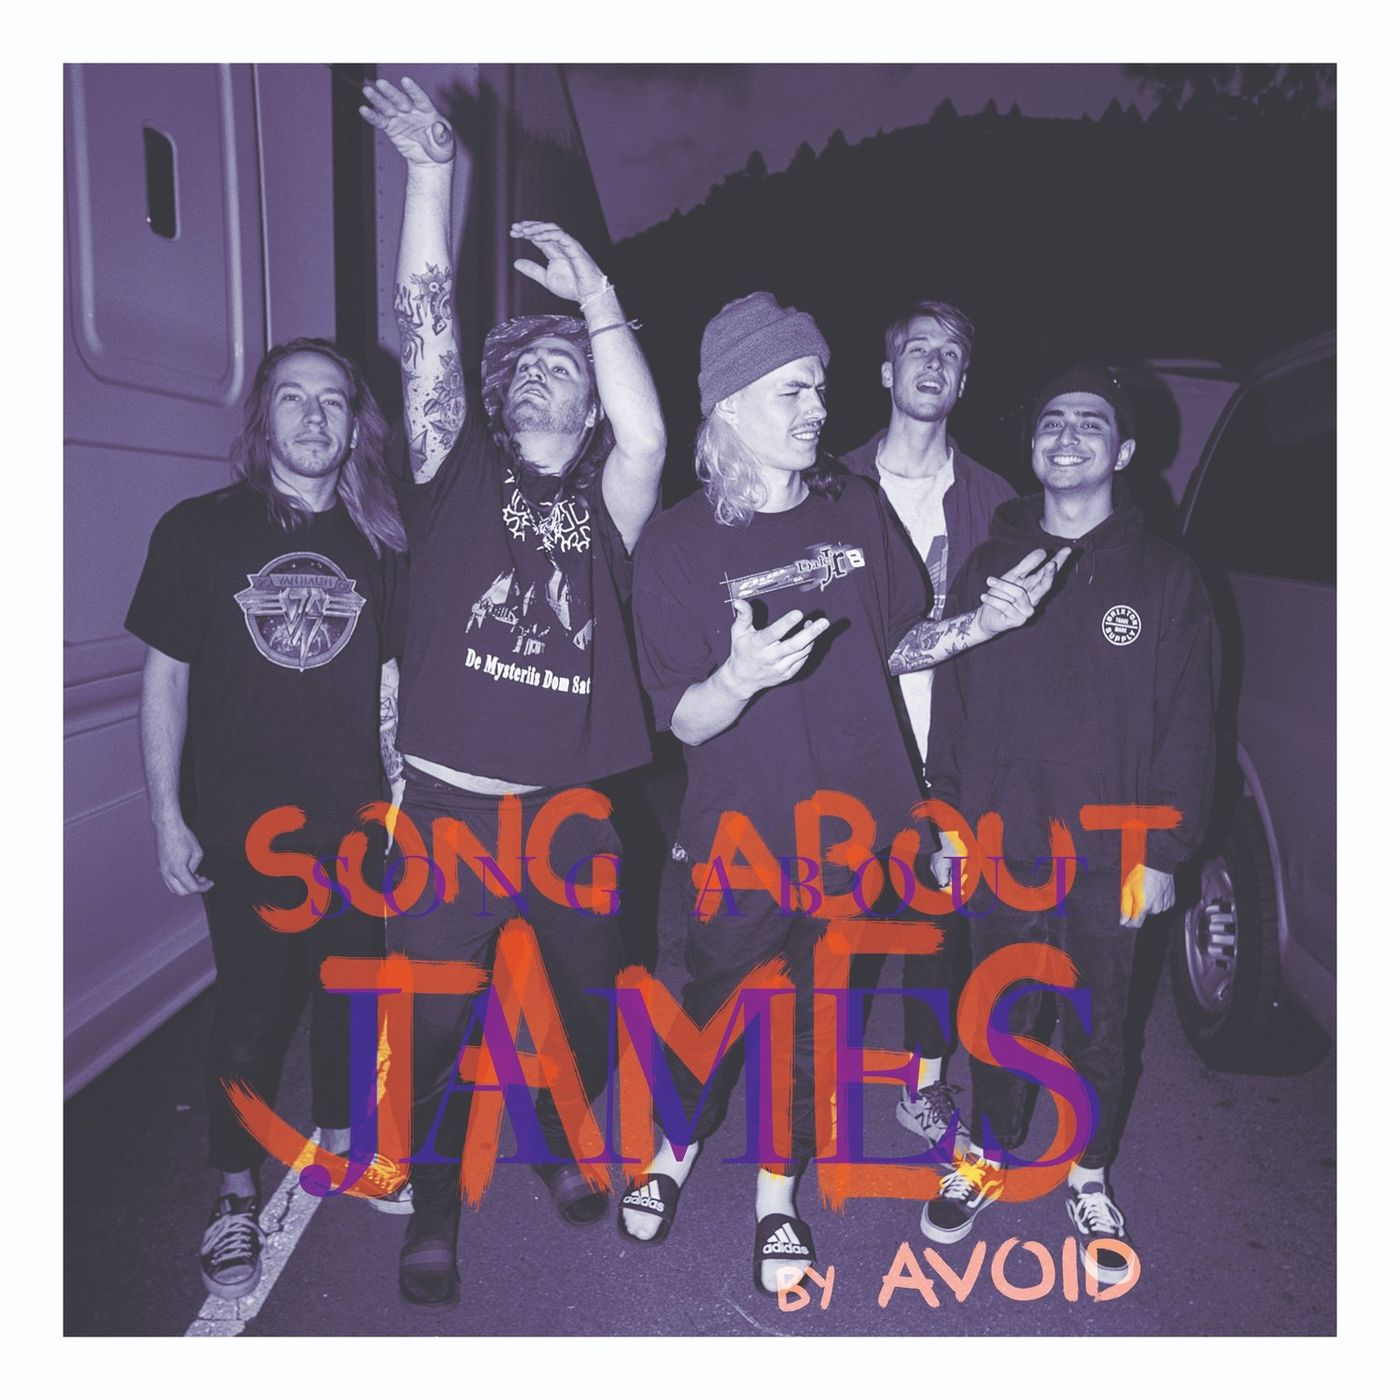 Avoid - Song About James [single] (2020)